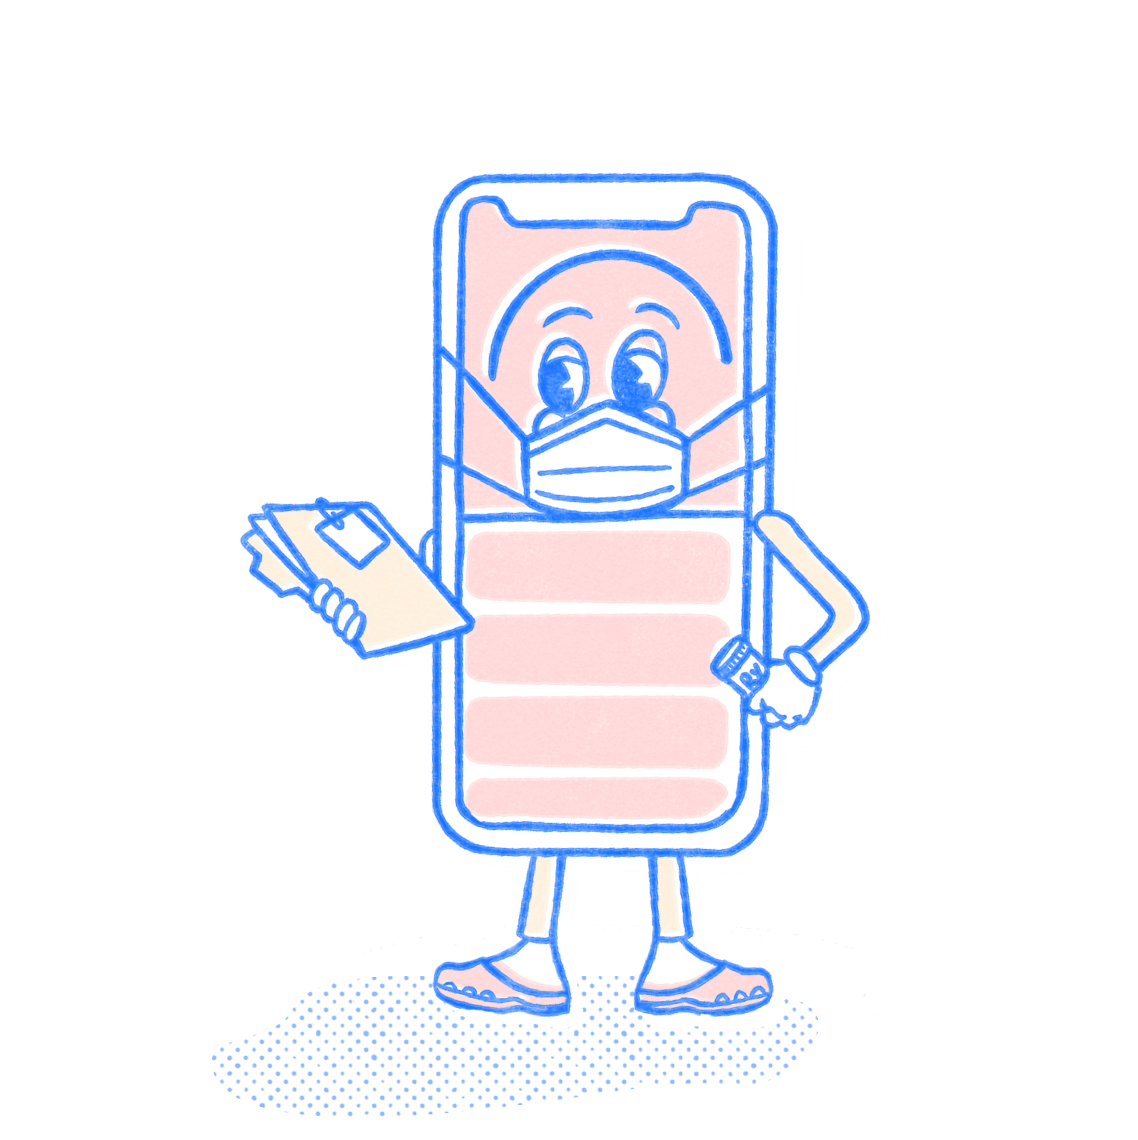 Nursing Pocket Prep mascot wearing a face mask and holding a patient file. Illustration.